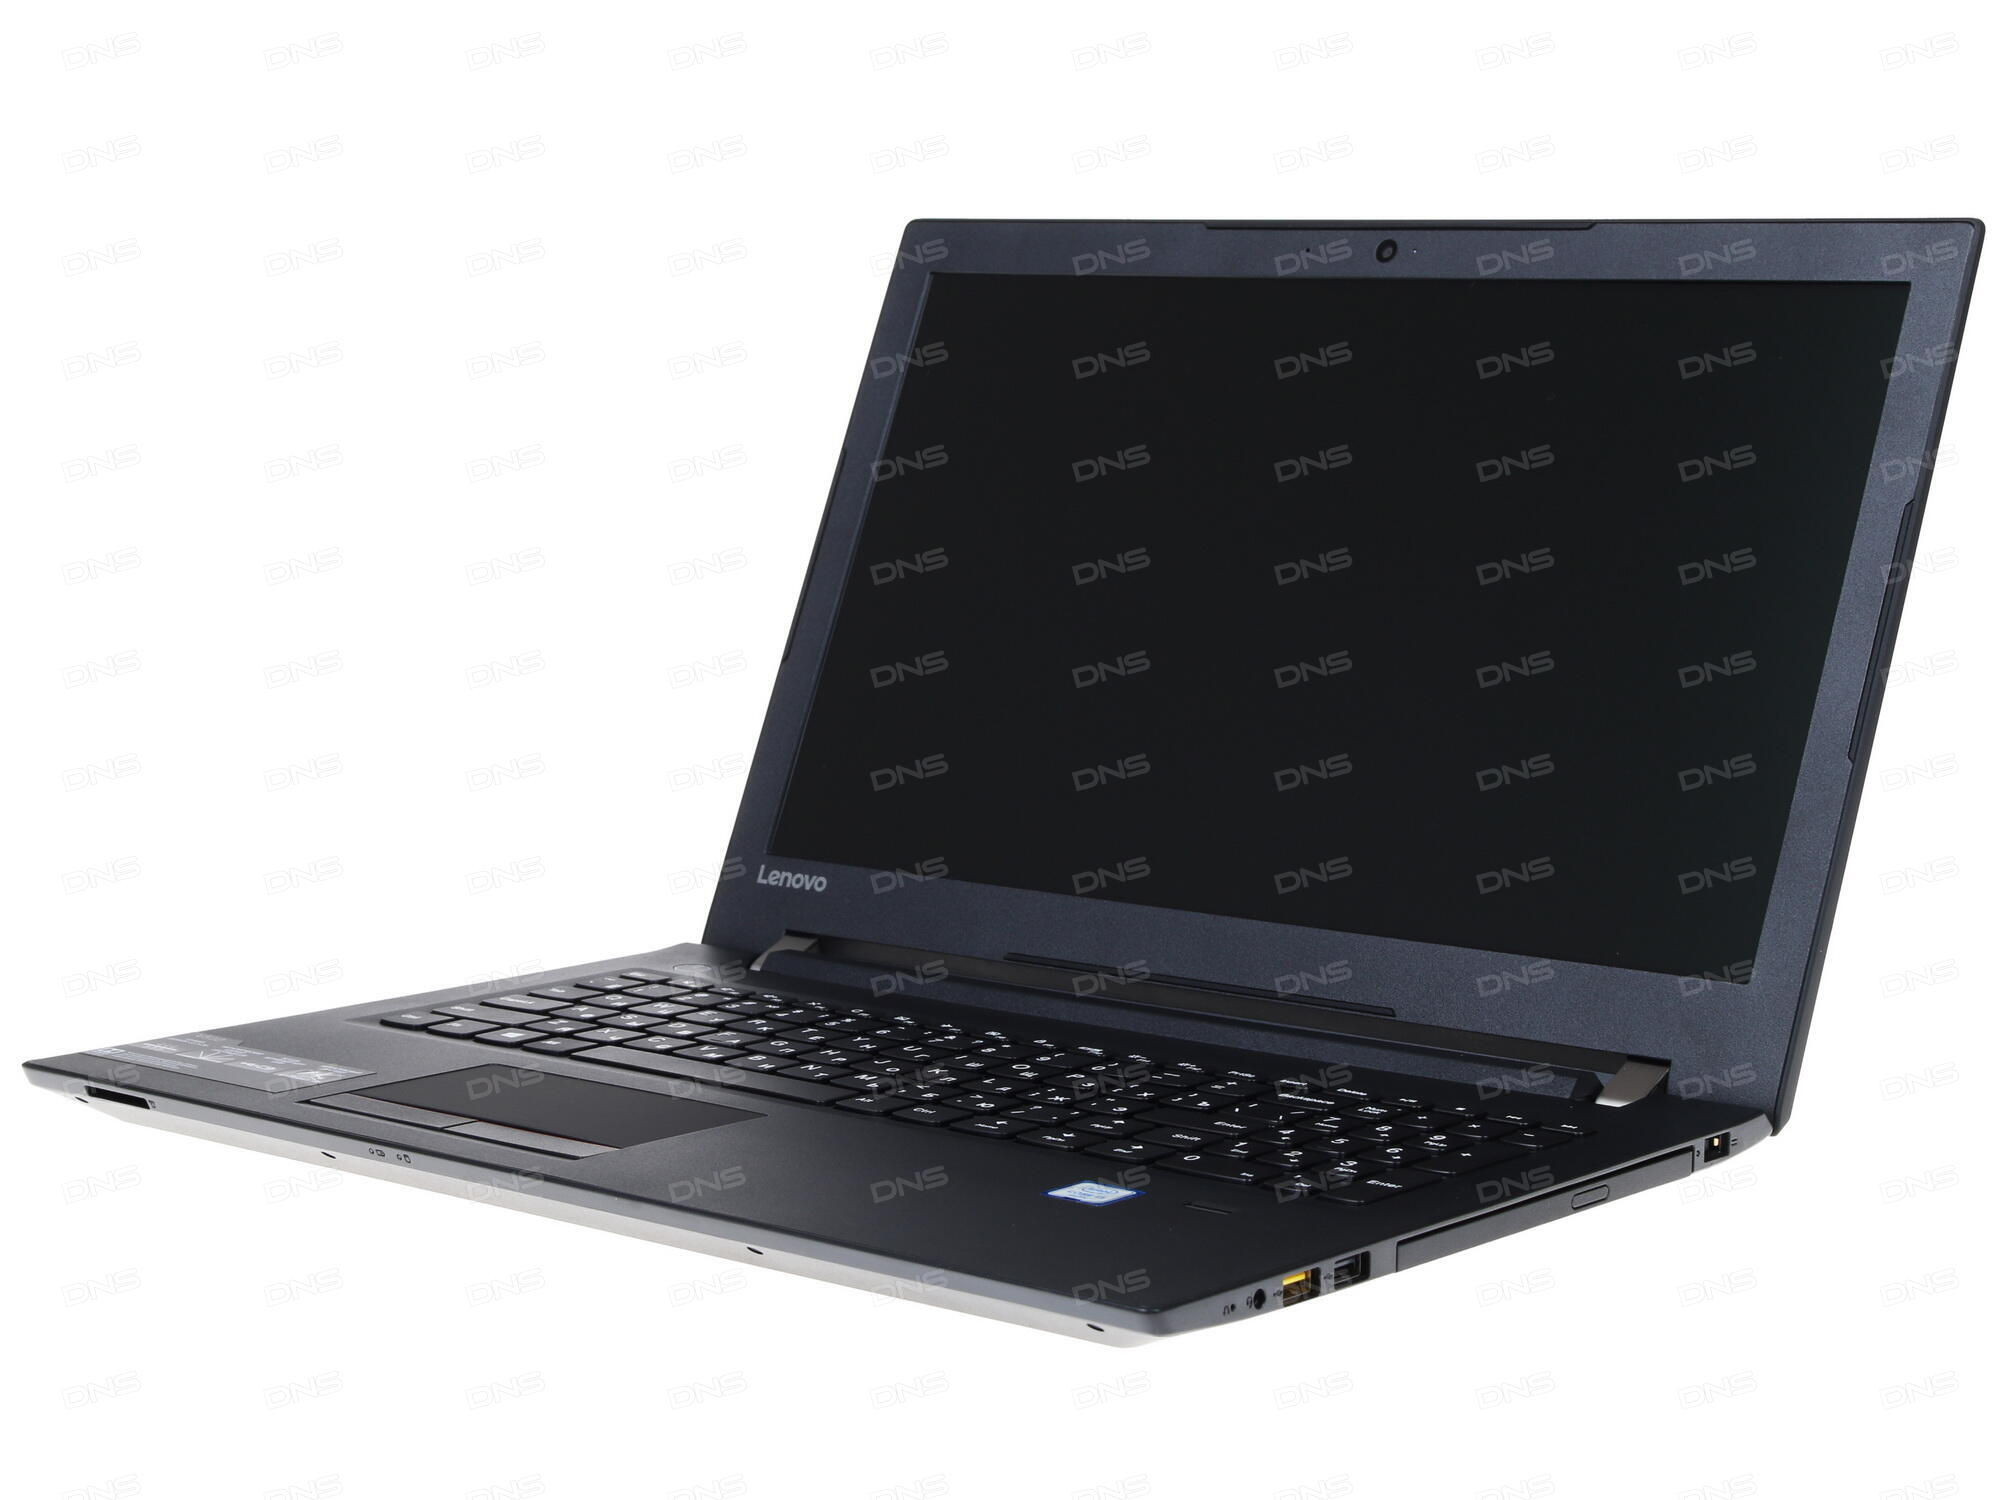 Ноутбук Lenovo V510-15IKB 80WQ024GRK (Intel Core i5-7200U 2.5 GHz/4096Mb/1000Gb/DVD-RW/Intel HD Graphics/Wi-Fi/Bluetooth/Cam/15.6/1920x1080/DOS)